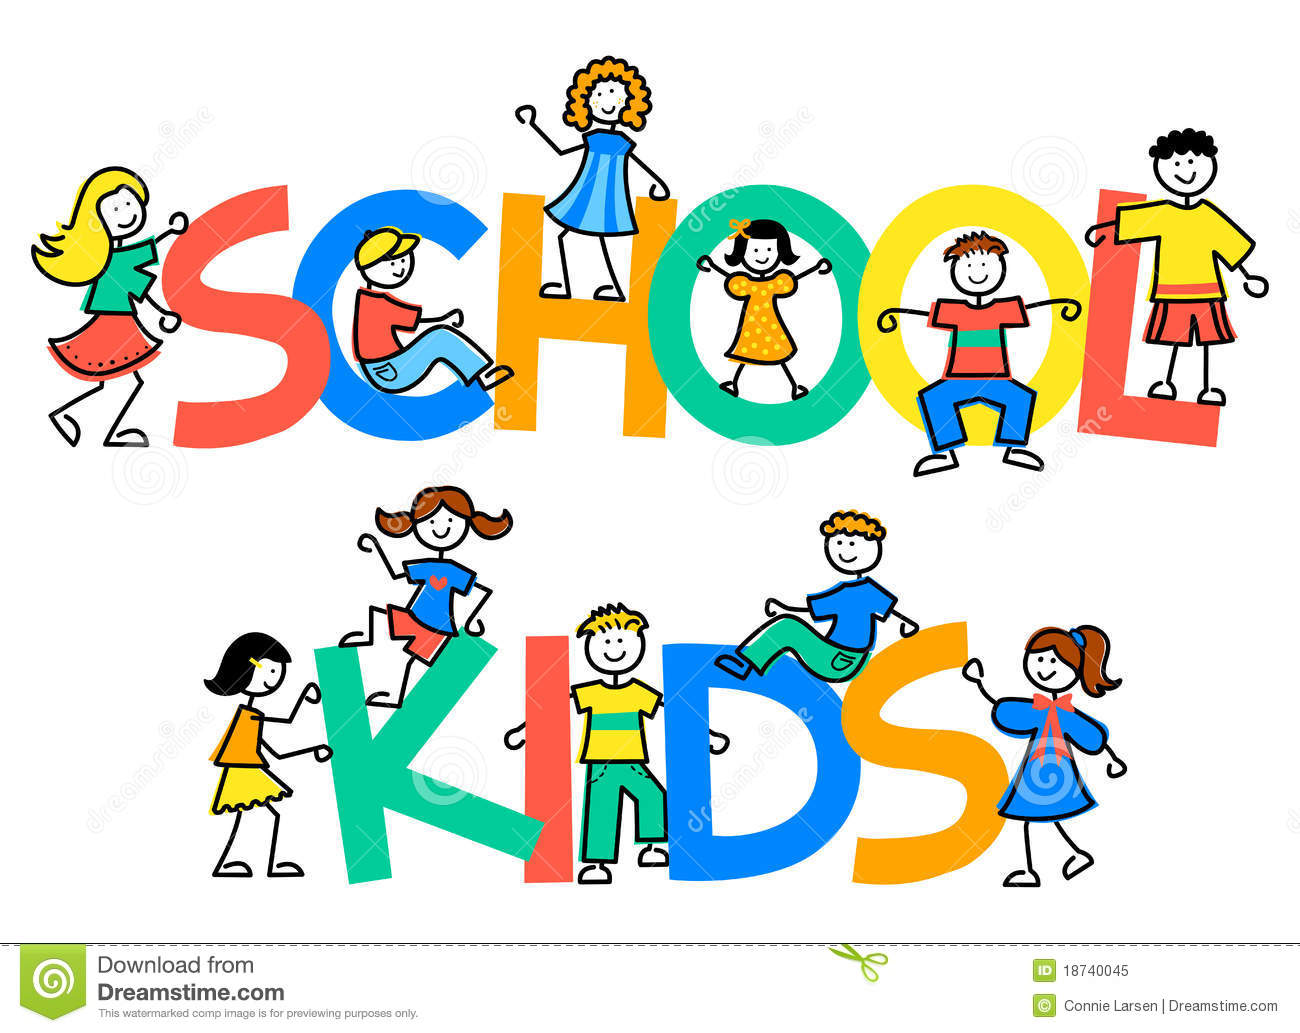 royalty free stock photo download cartoon school kidseps